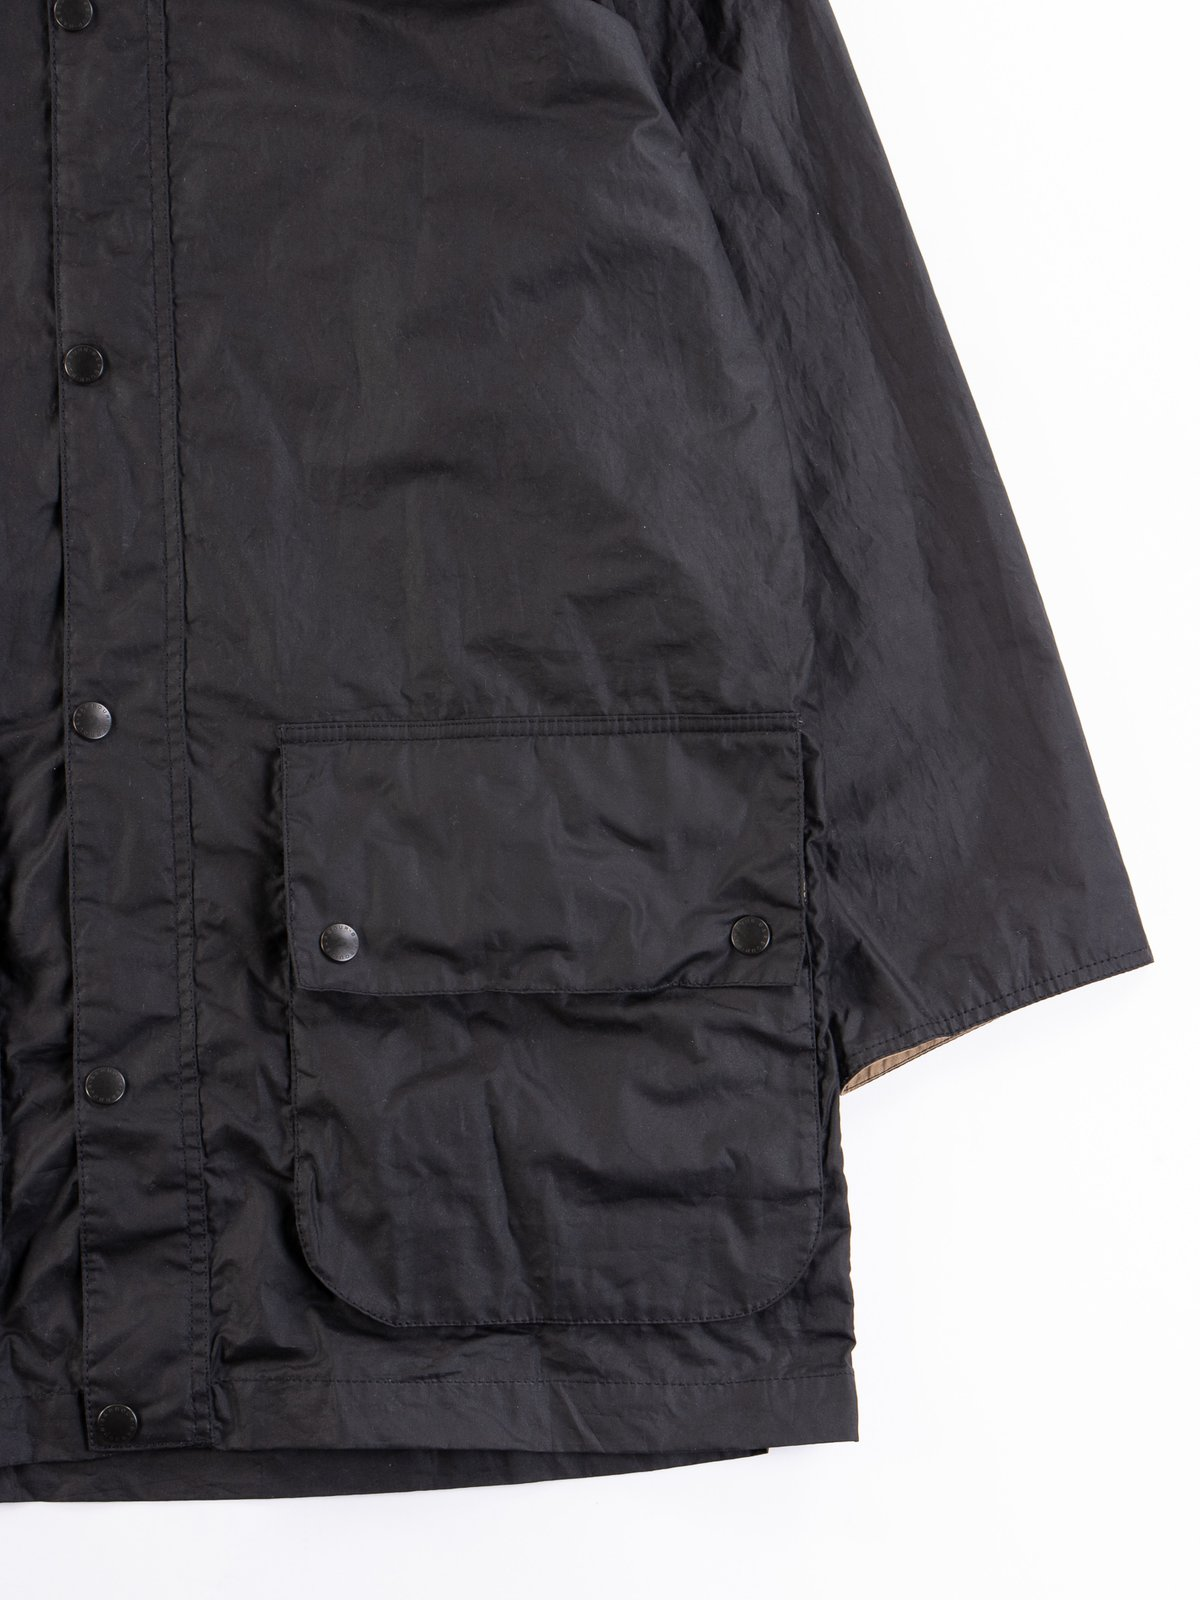 Black Hiking Waxed Cotton Jacket - Image 5